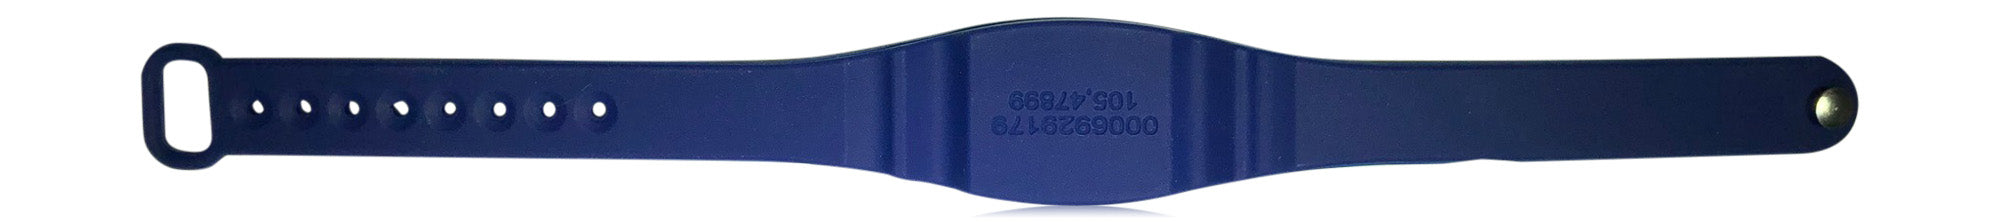 10 Blue Adjustable 26 Bit EM Proximity Wristbands